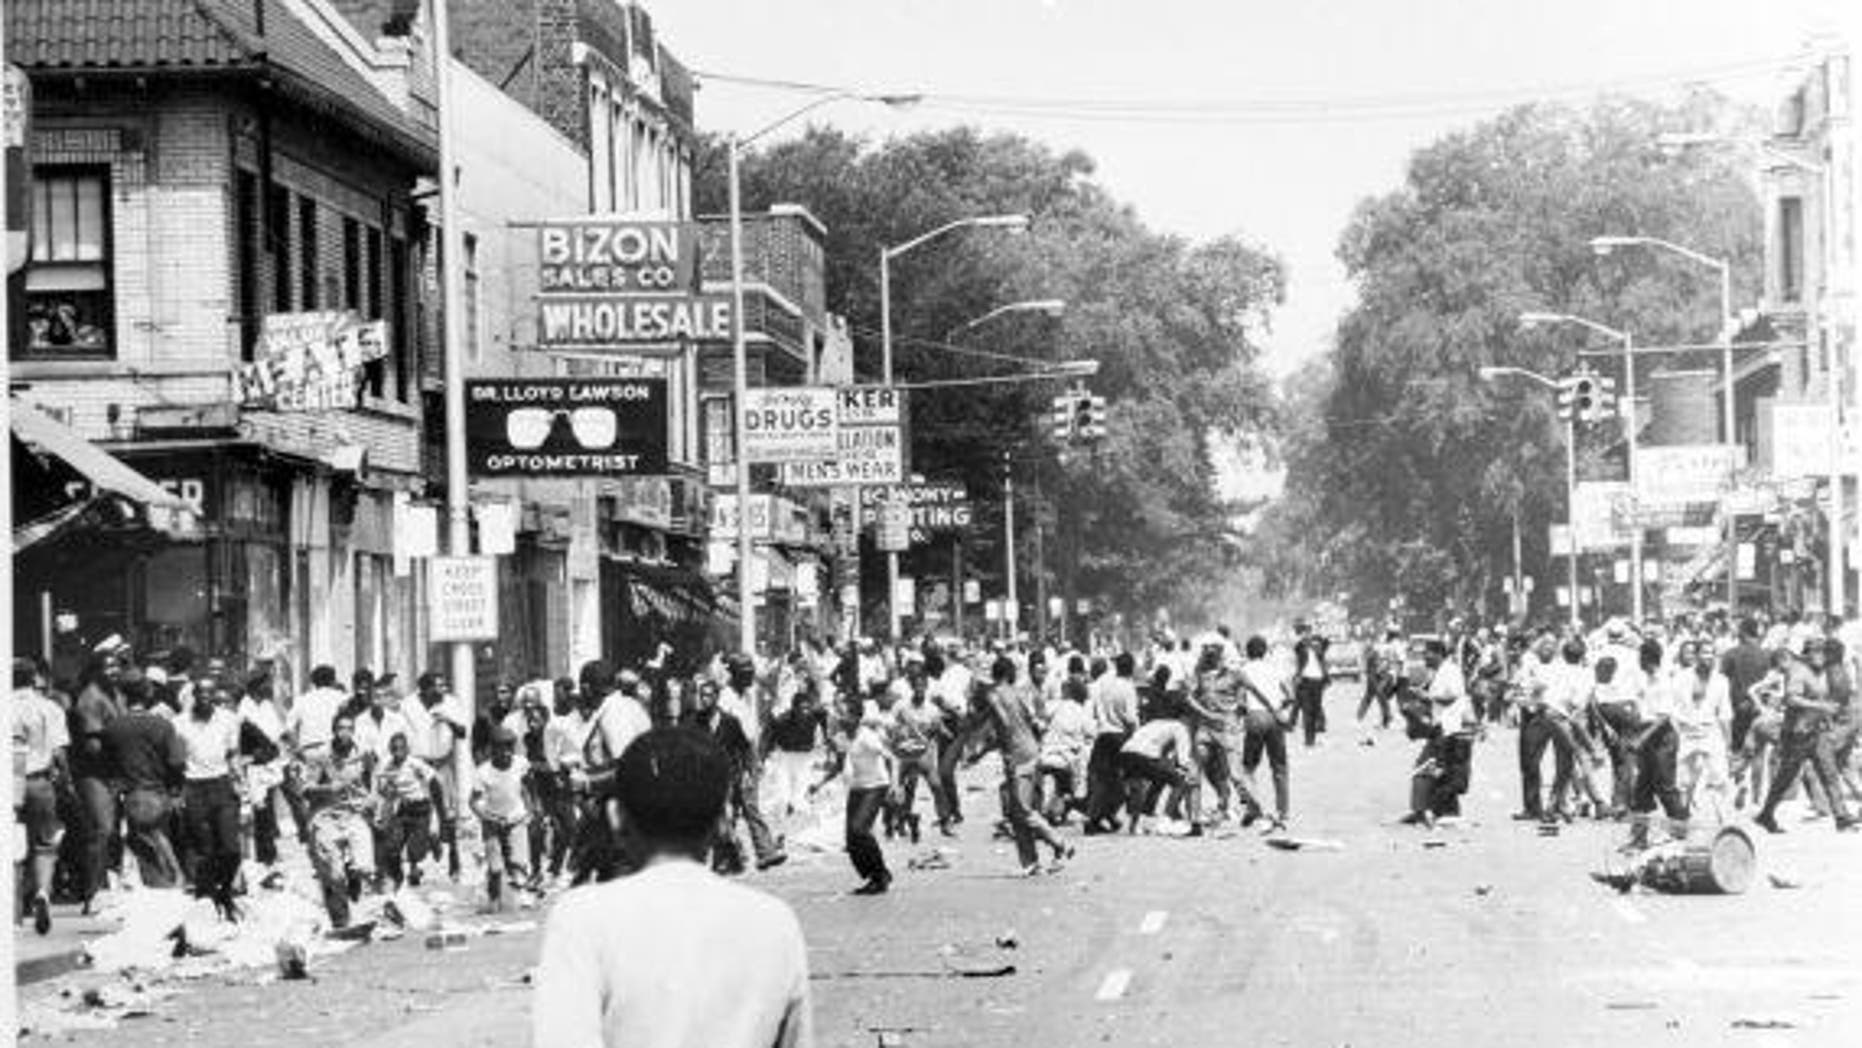 Westlake Legal Group Detroitriot072319 This Day in History: July 23 fox-news/us/this-day-in-history fox news fnc/us fnc article 21fc9954-3762-50e6-b6b3-8cdcc5271b39